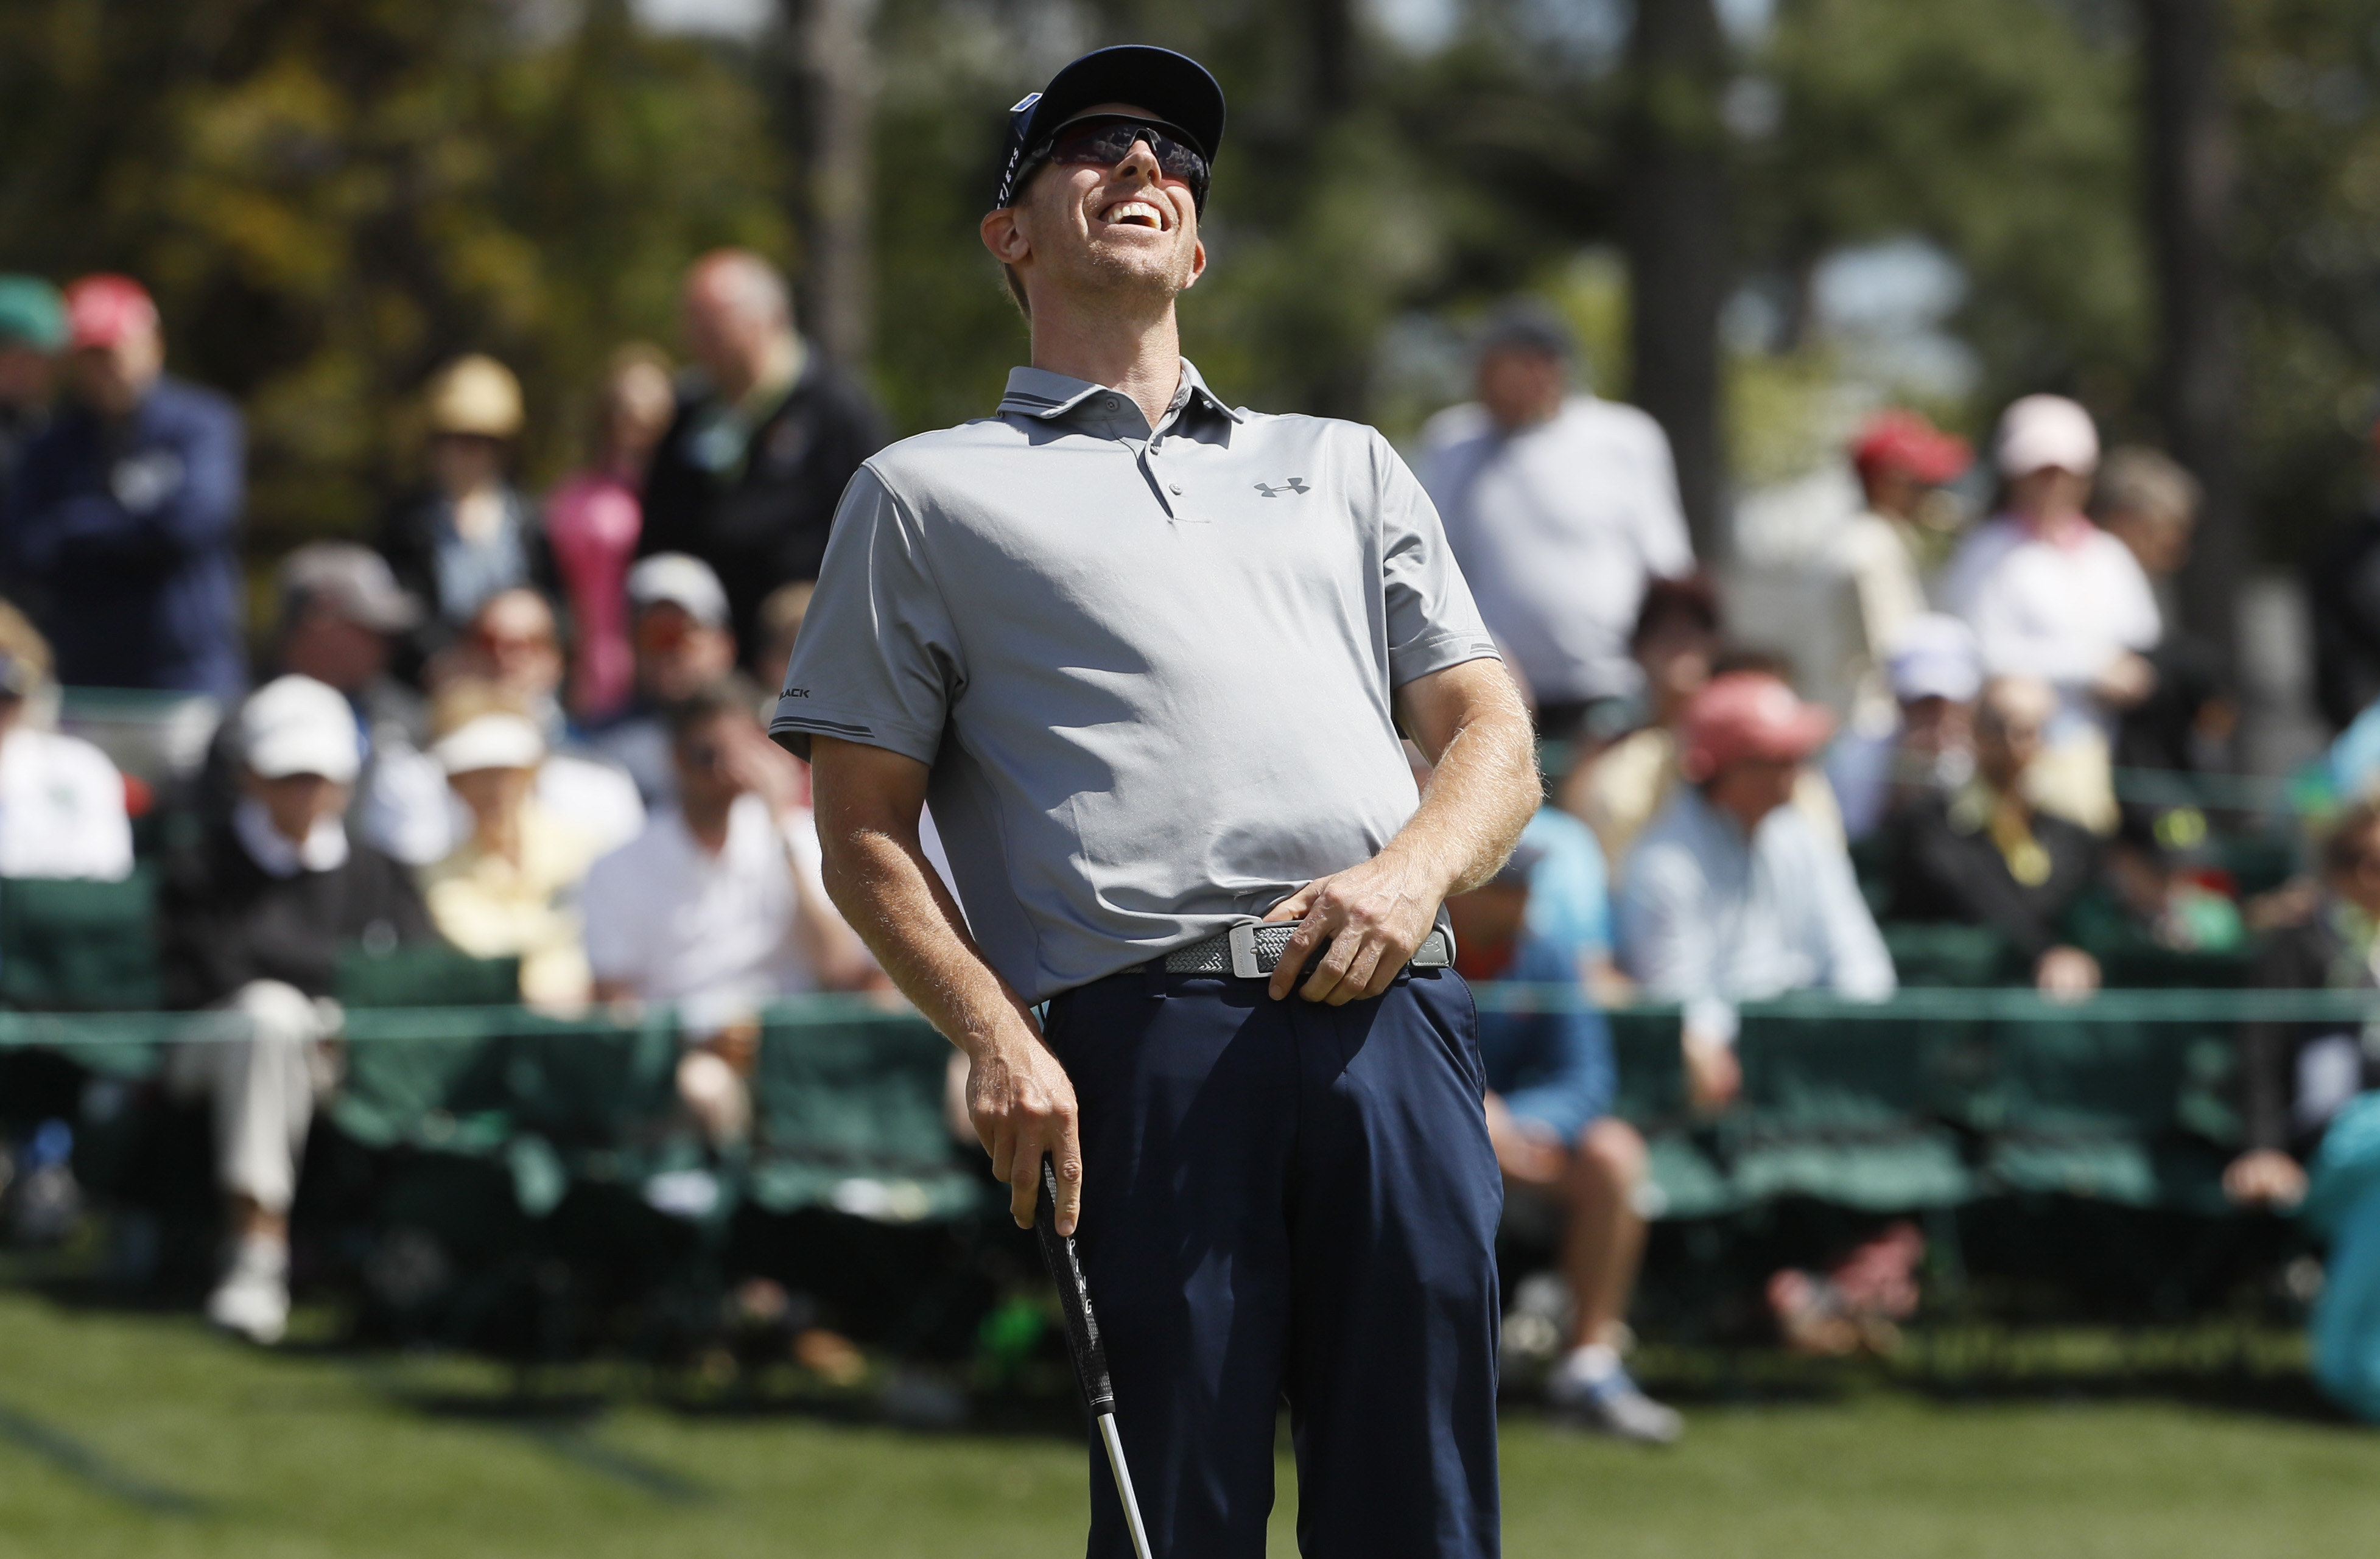 FILE - In this April 8, 2016, file phot,o Hunter Mahan reacts to a missed birdie putt on the 18th hole in the second round of the Masters golf tournament in Augusta, Ga. Once as high as No. 4 in the world, he is at No. 143 and falling. At home, his wife i